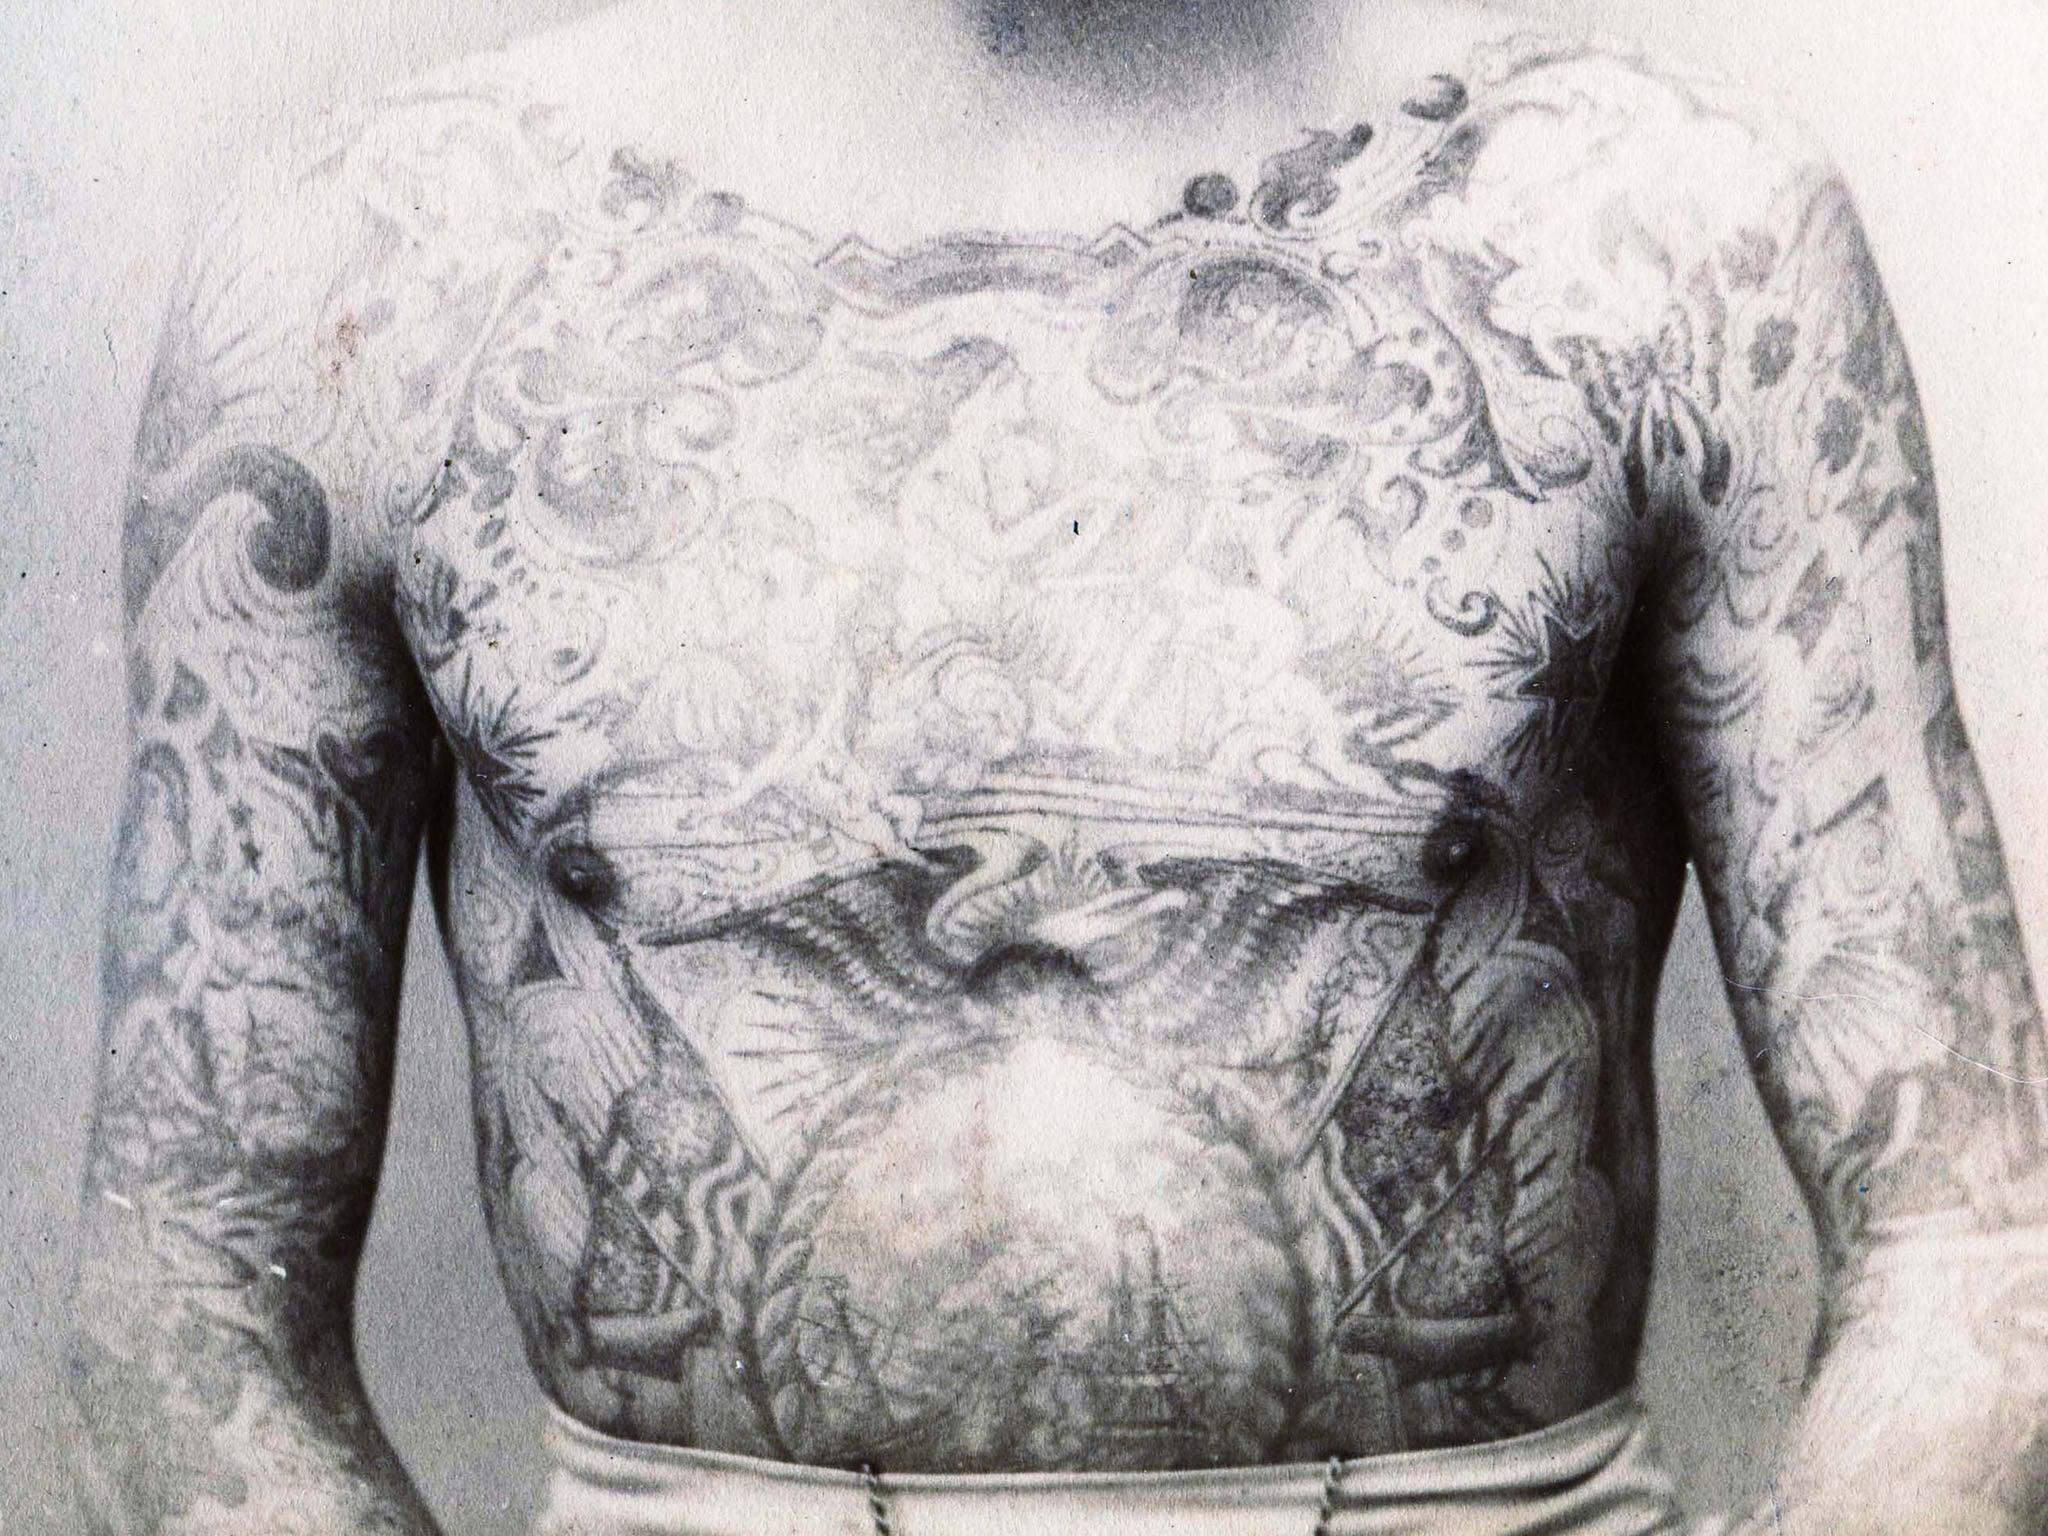 Beyond bad character: The history of tattoos on Victorian convicts